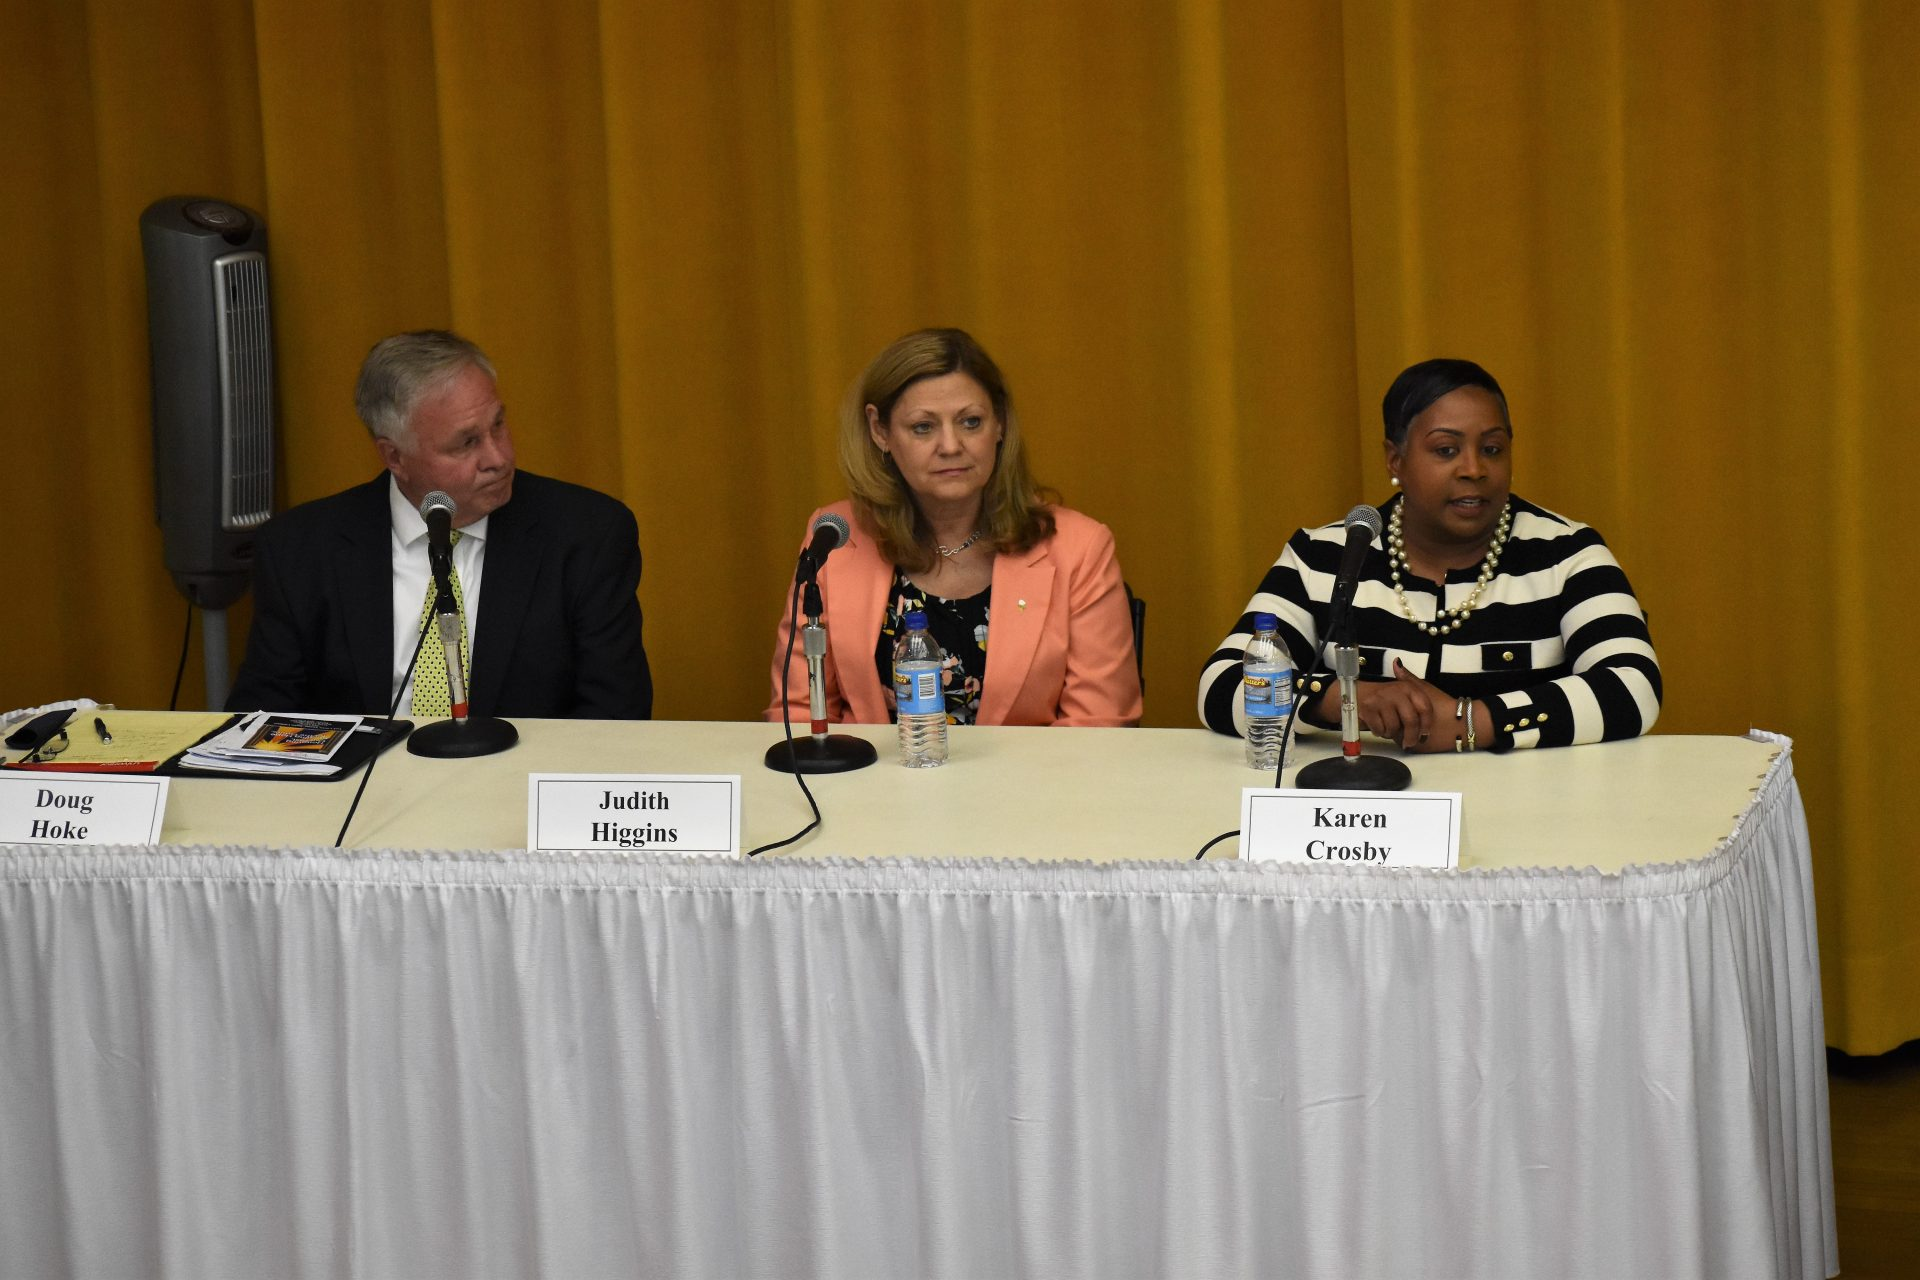 Three Democratic candidates for York County commissioner participate in a forum in York on April 9, 2019. From left to right, they are incumbent Commissioner Doug Hoke, Judith Higgns and Karen Crosby. A fourth Democratic candidate, Madeline Geiman, said she didn't receive an invitation to participate.